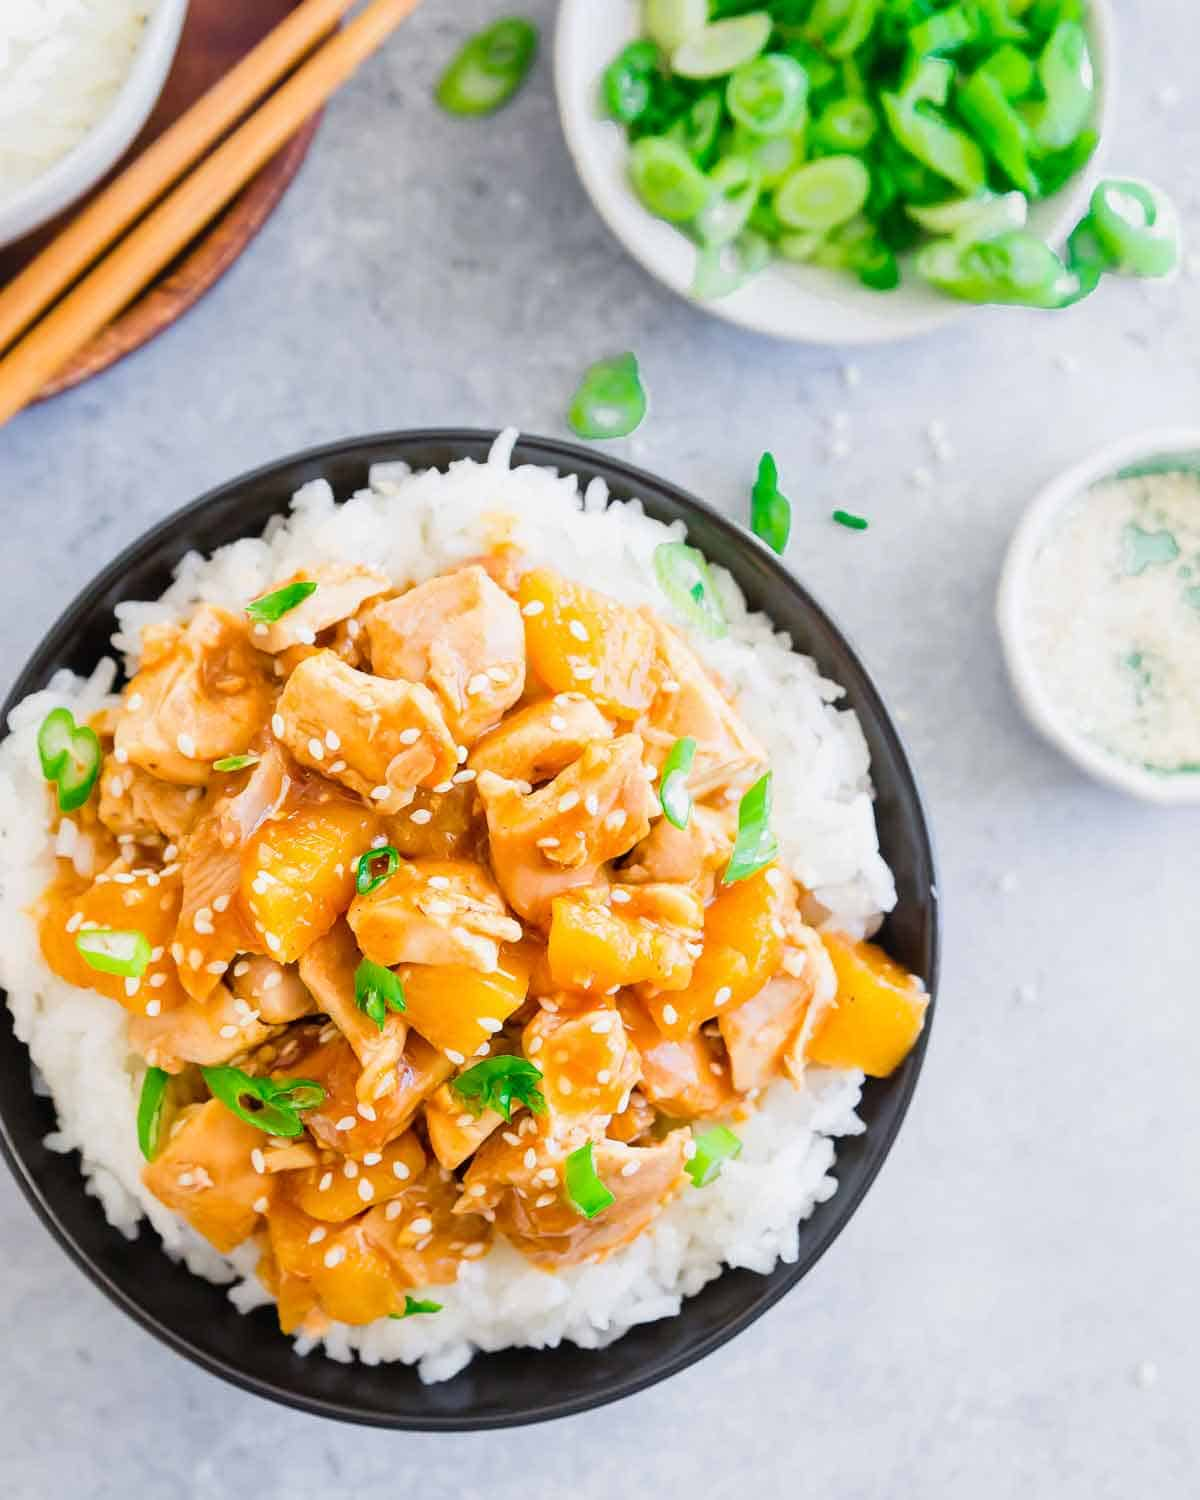 A sweet and stick honey garlic ginger sauce coats chicken thighs and pineapple chunks in this easy slow cooker dinner recipe.